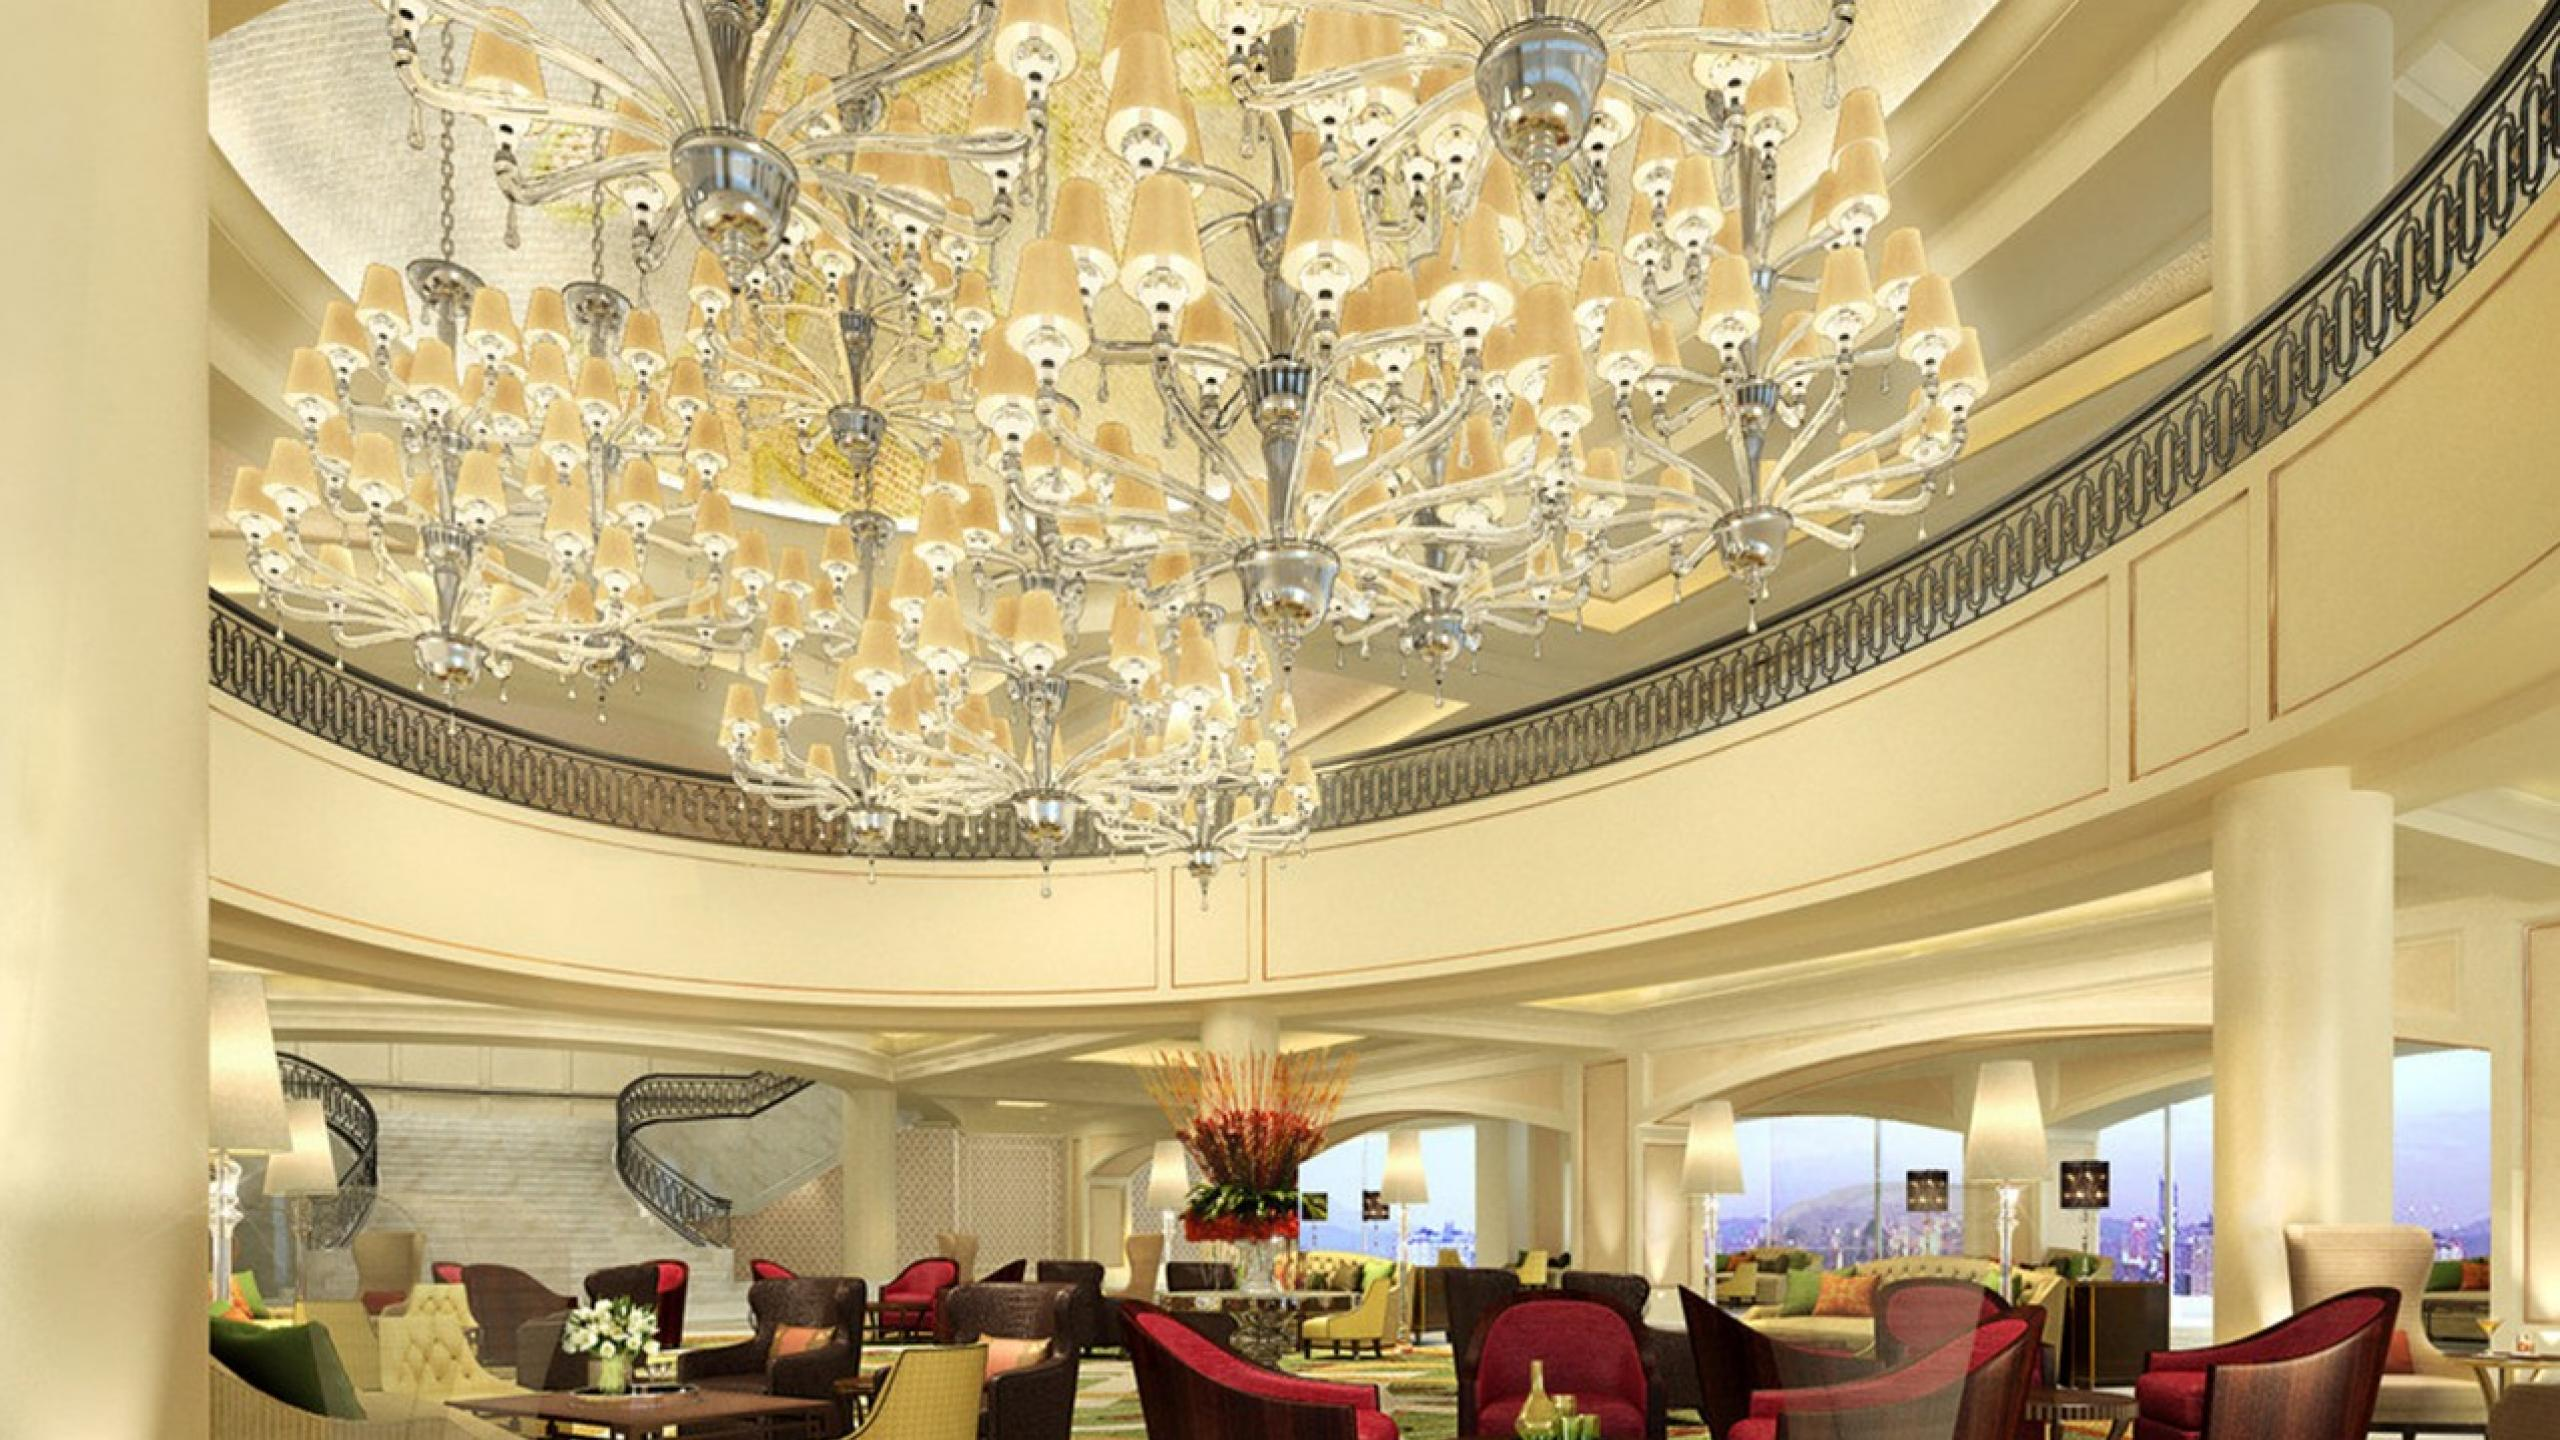 Perfect chandeliers for luxurious hotels chicago Amazing shops in Chicago that you can't miss chandelier chicago Amazing shops in Chicago that you can't miss chandelier